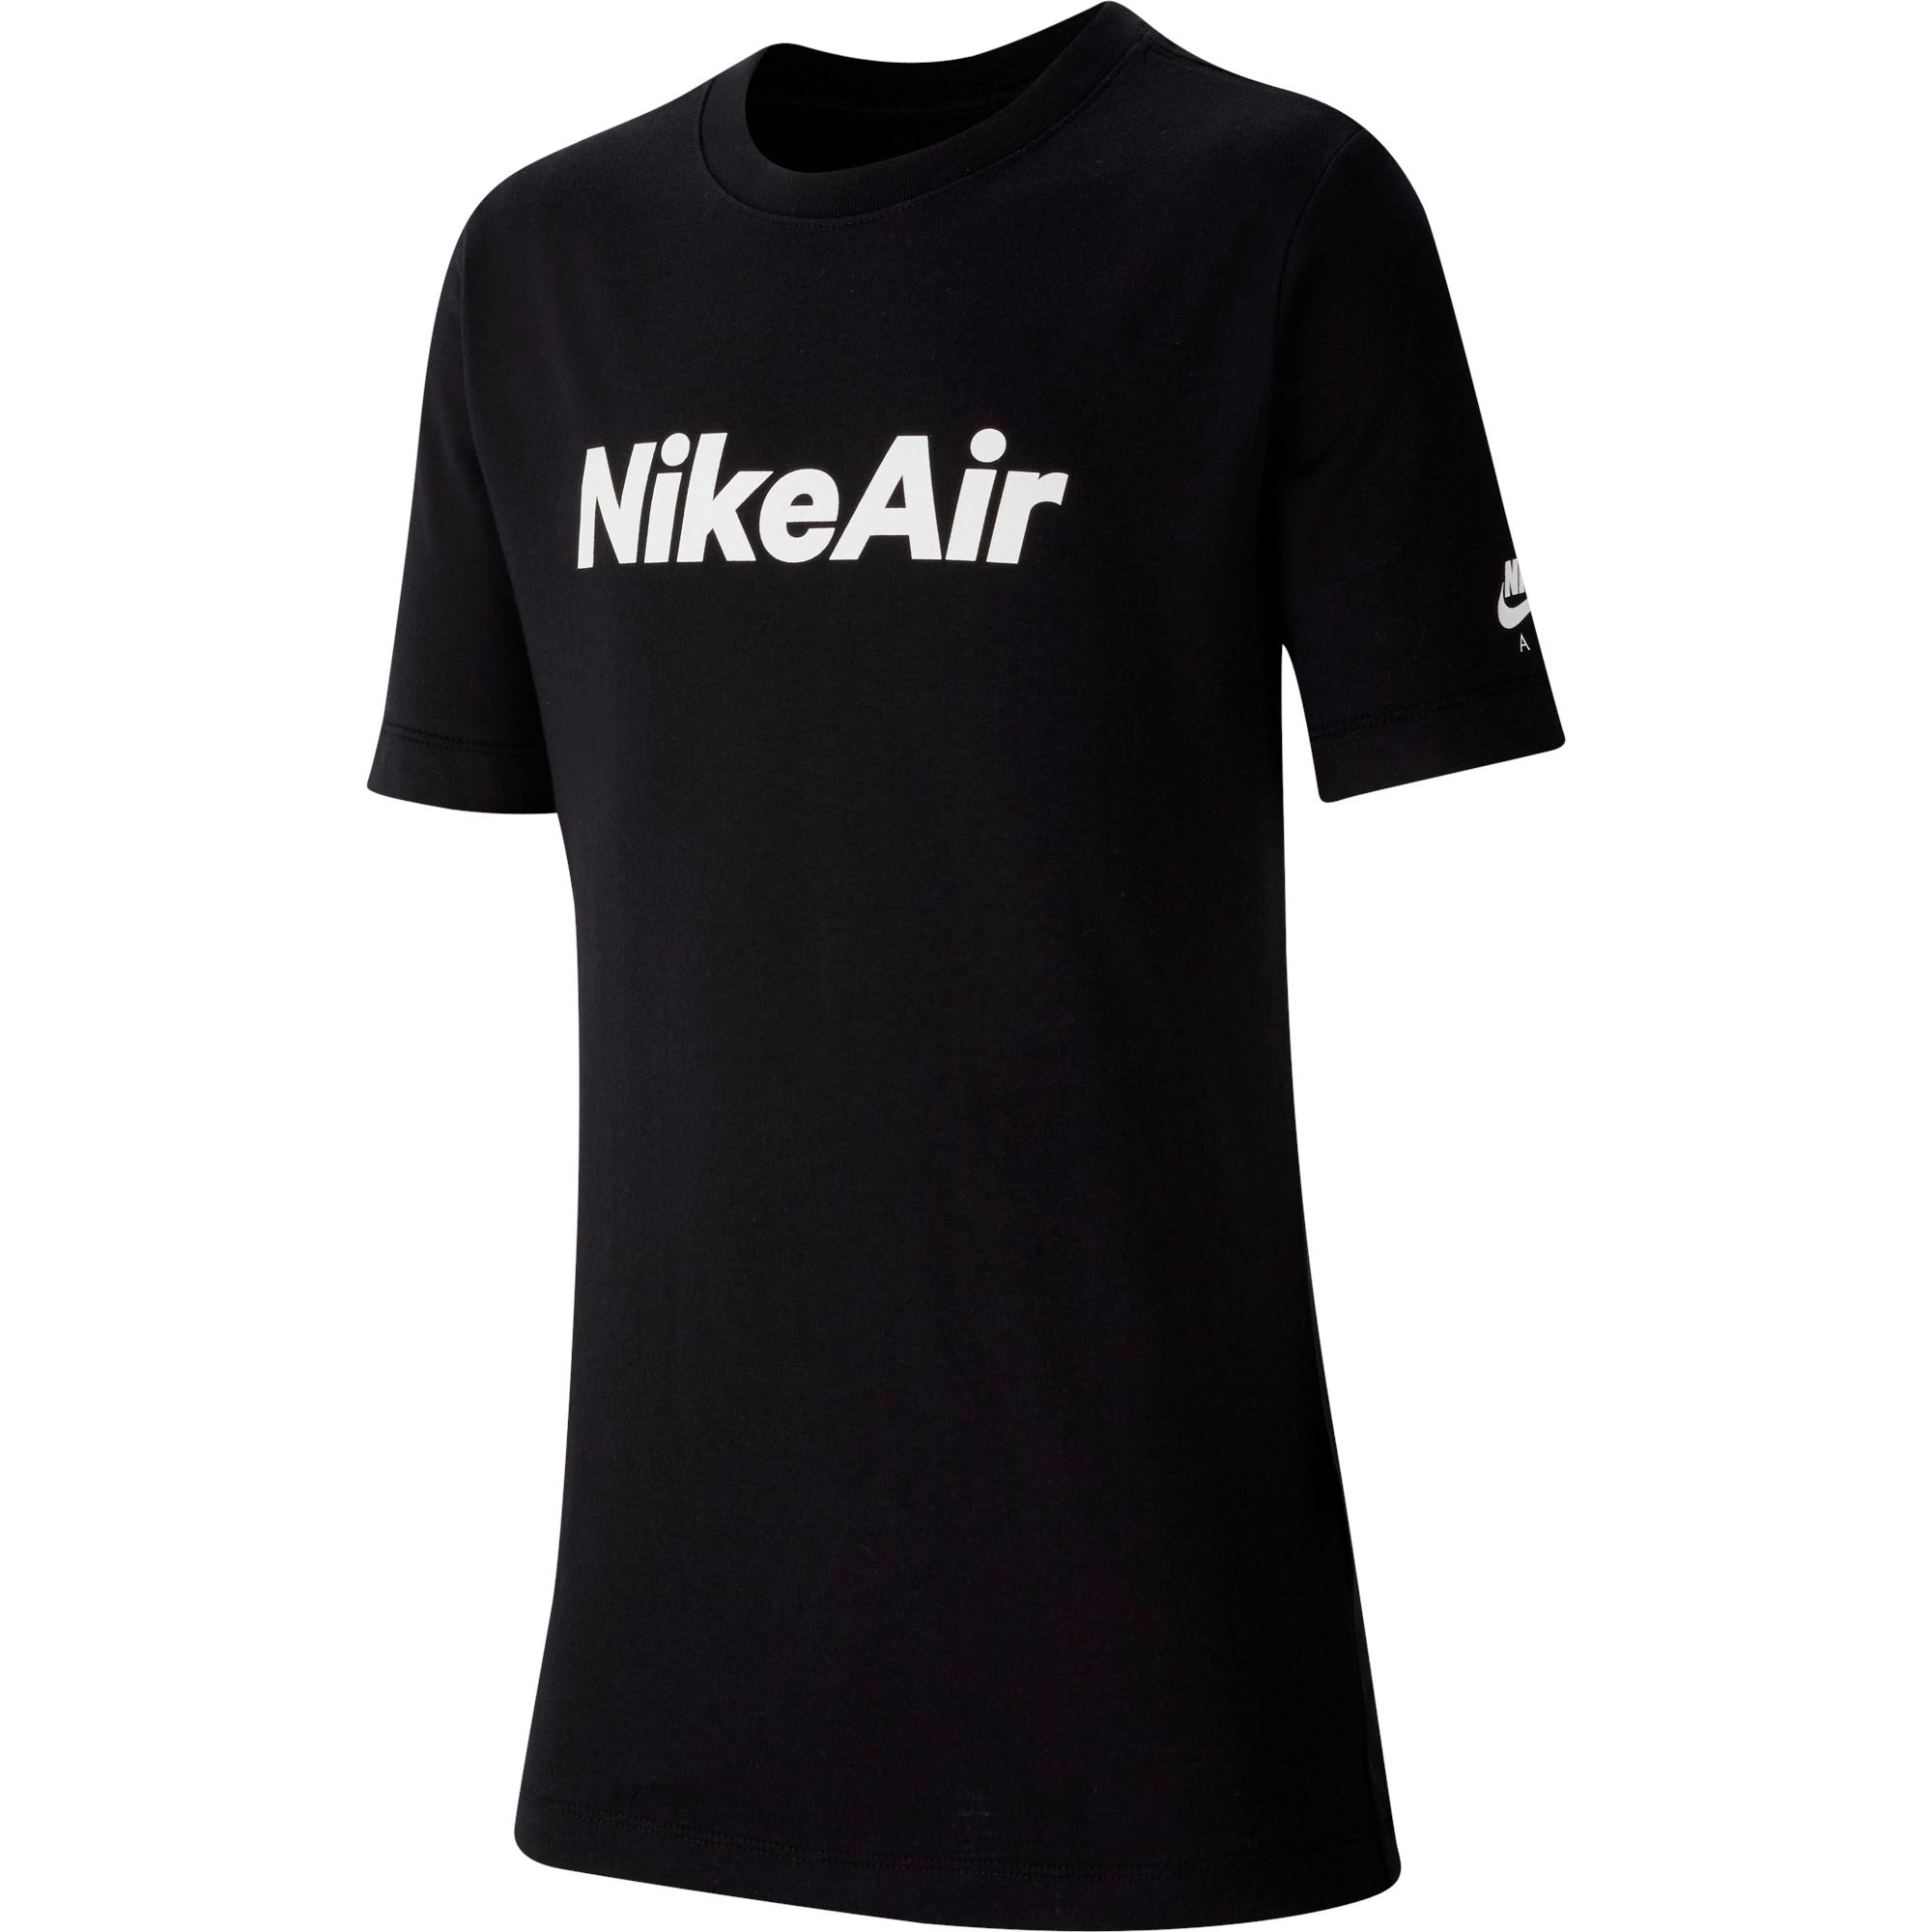 Nike Boys All About Air Tee - Black/White SP-ApparelTees-Kids Nike